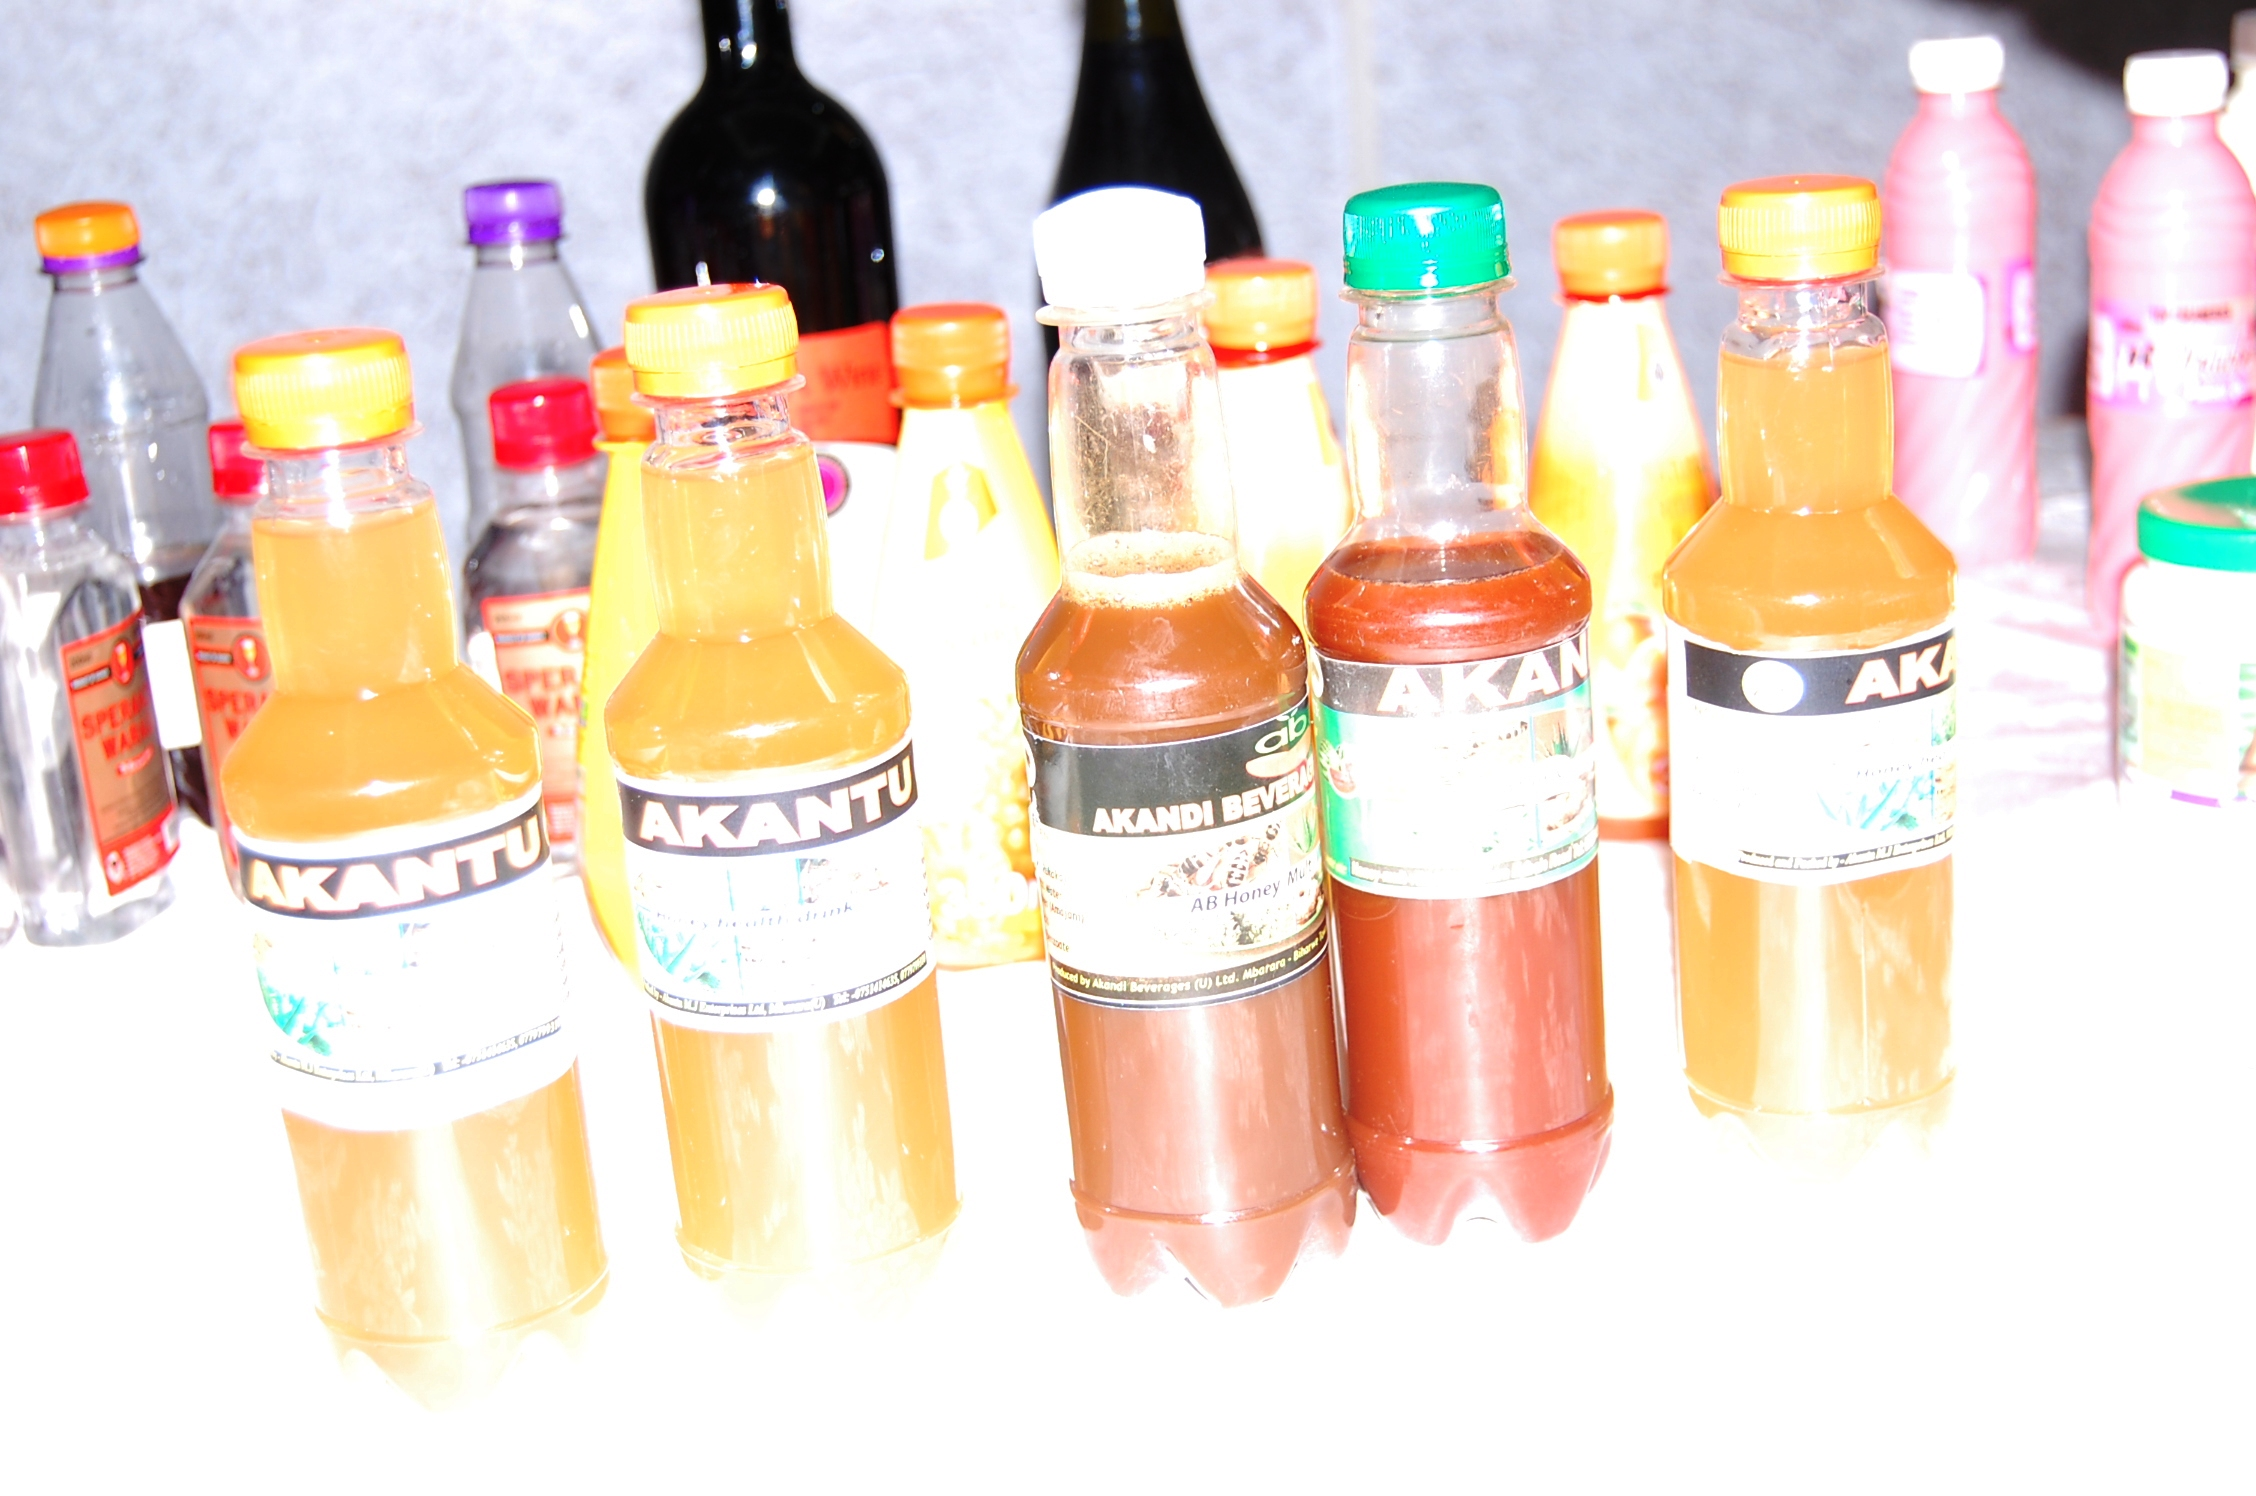 Some of the products that were impounded by then RDC Martha Asimwe mbarara last year (Photo by Bob Aine)